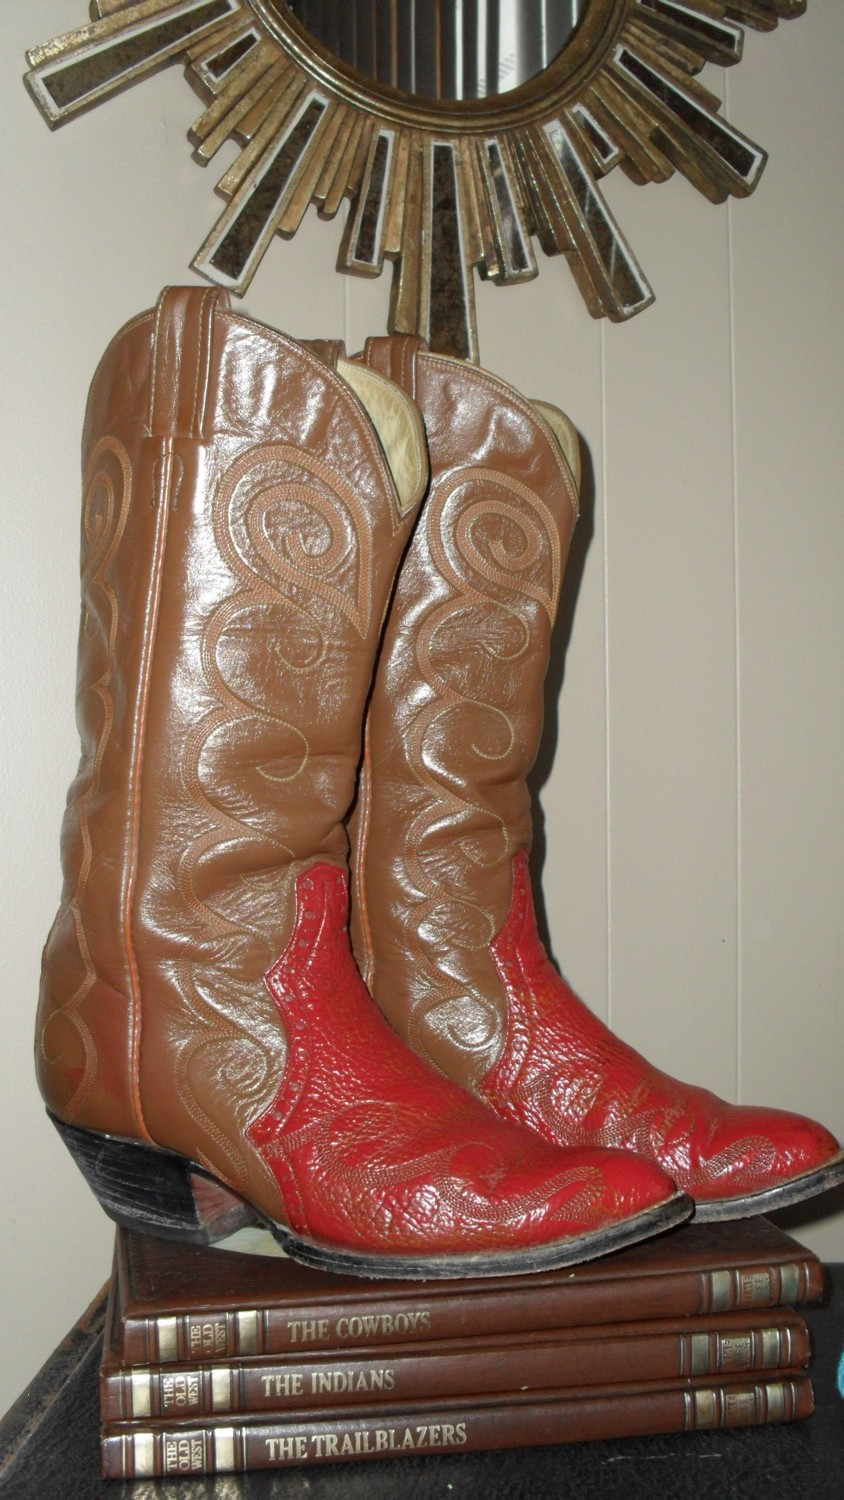 Rare Laramie boots worthy of immense boot envy!